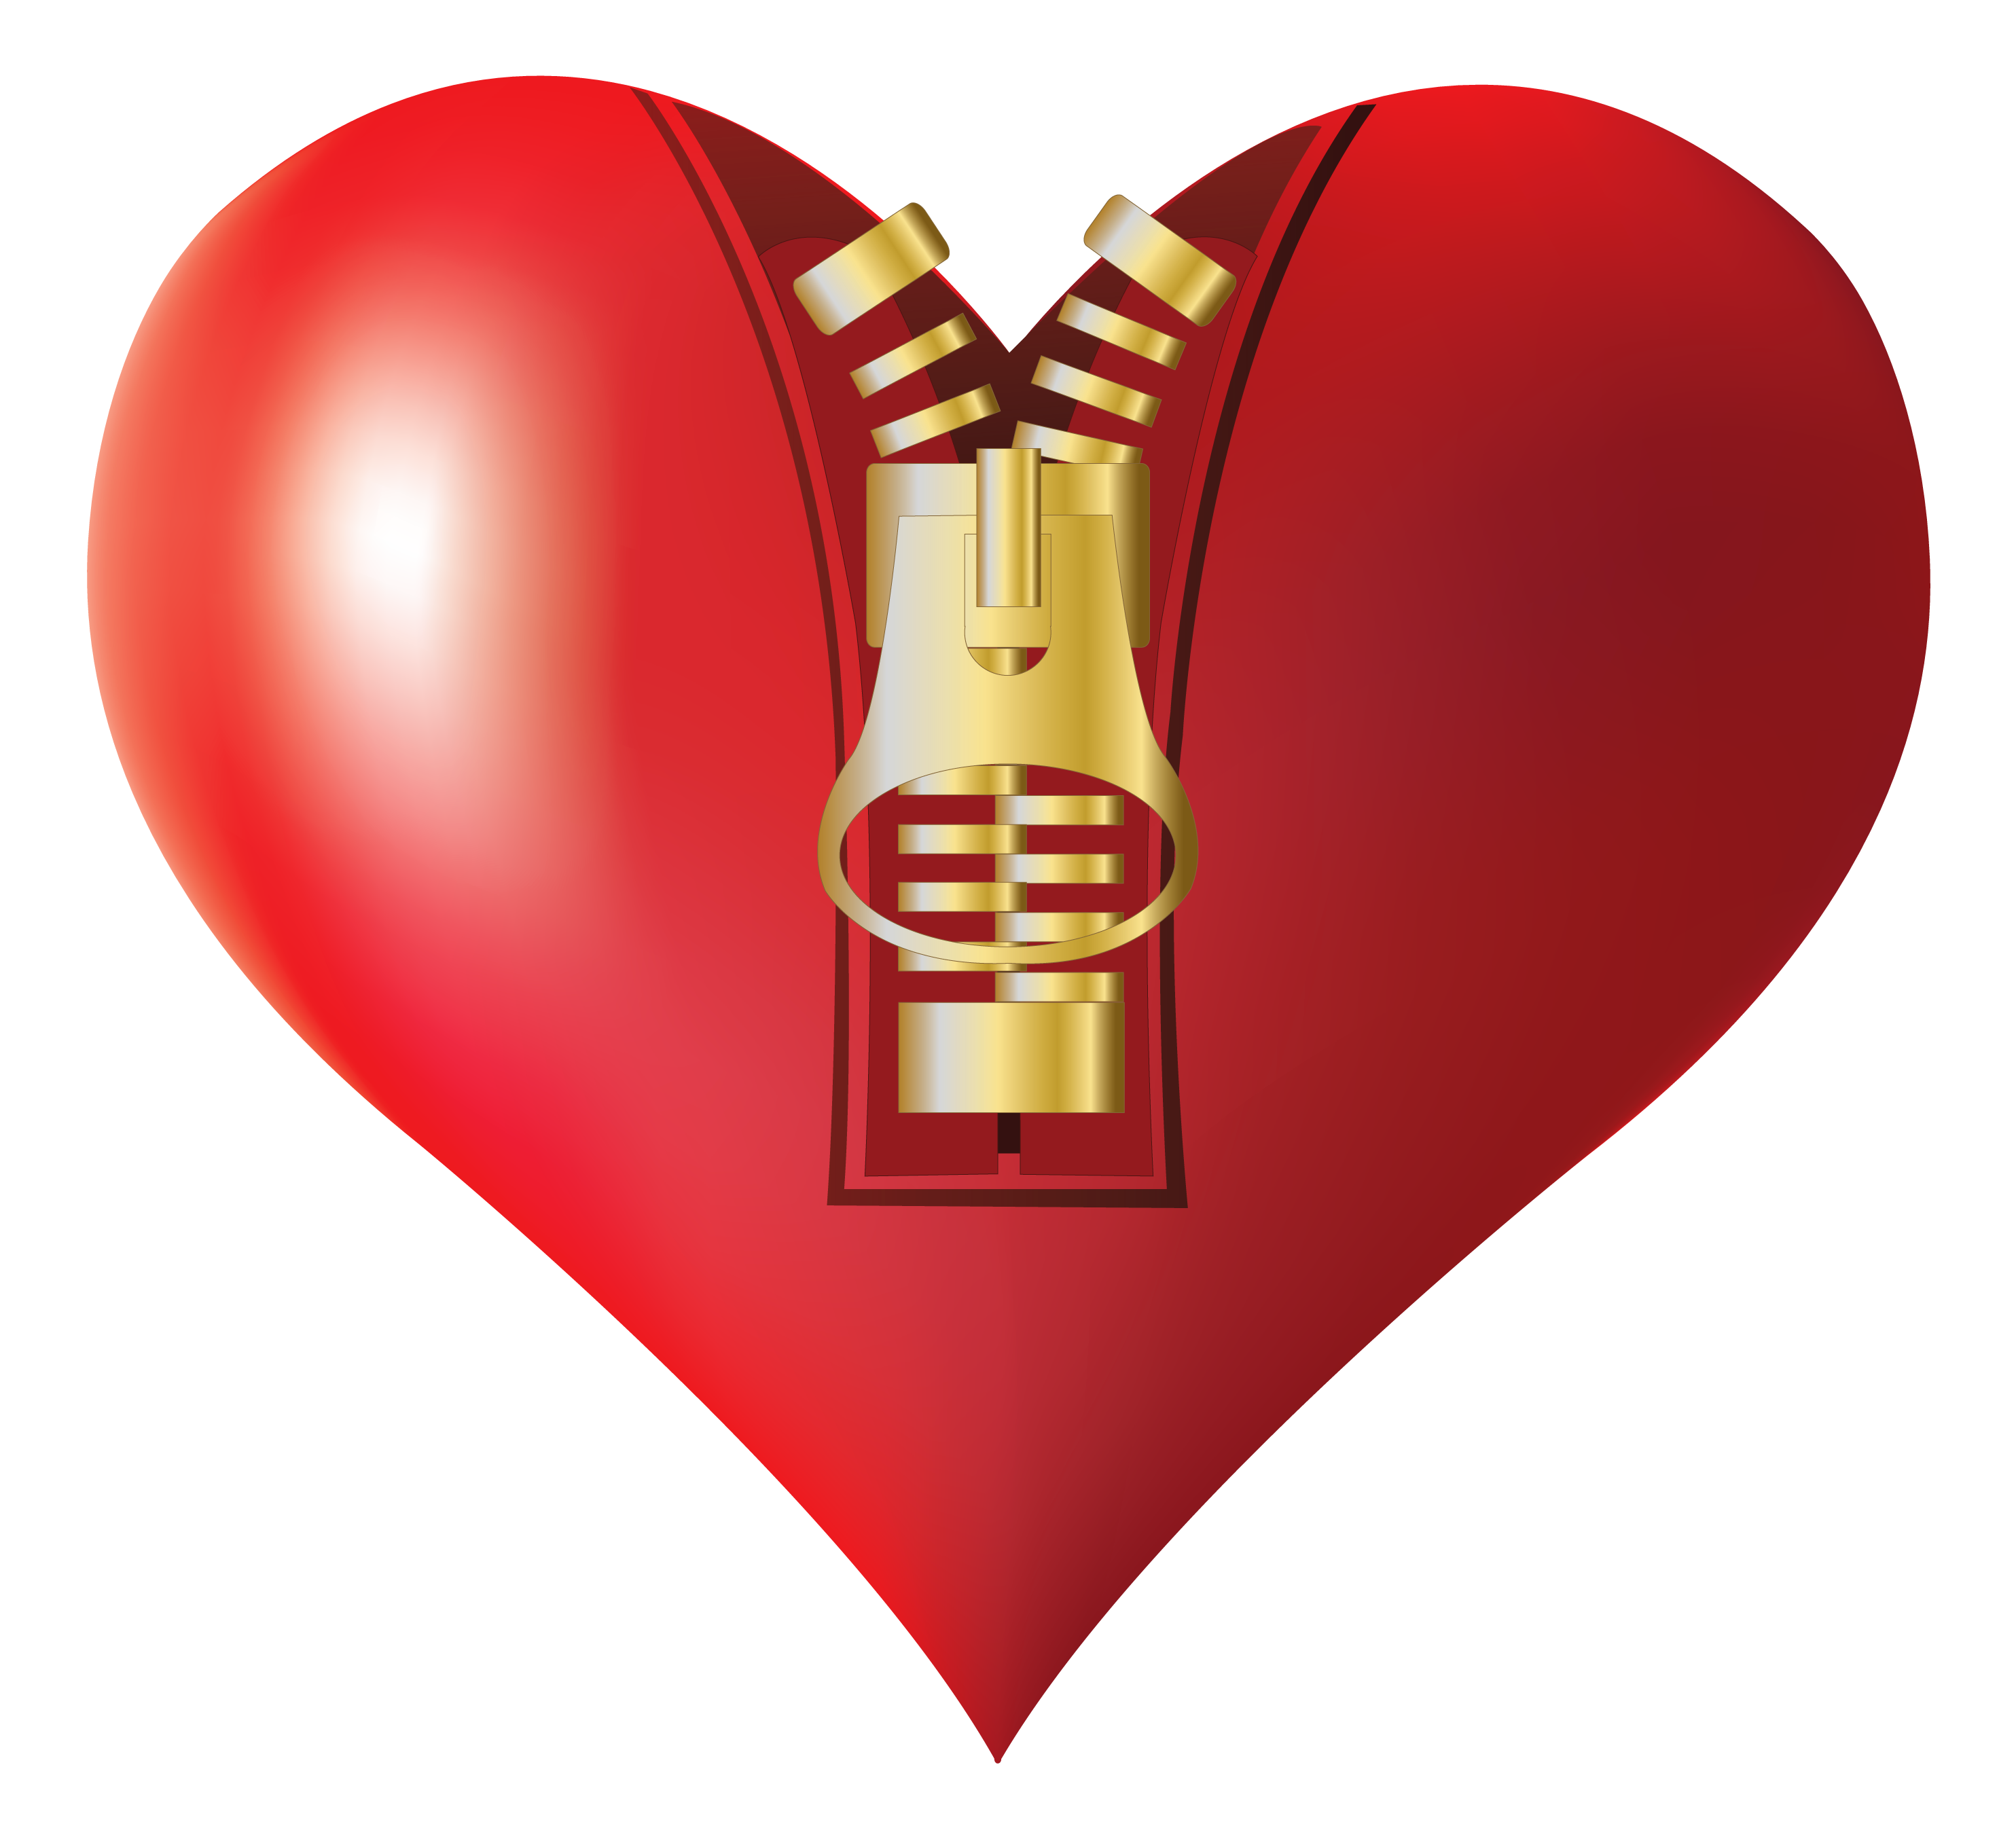 Zipped heart png image. Hearts clipart fruit